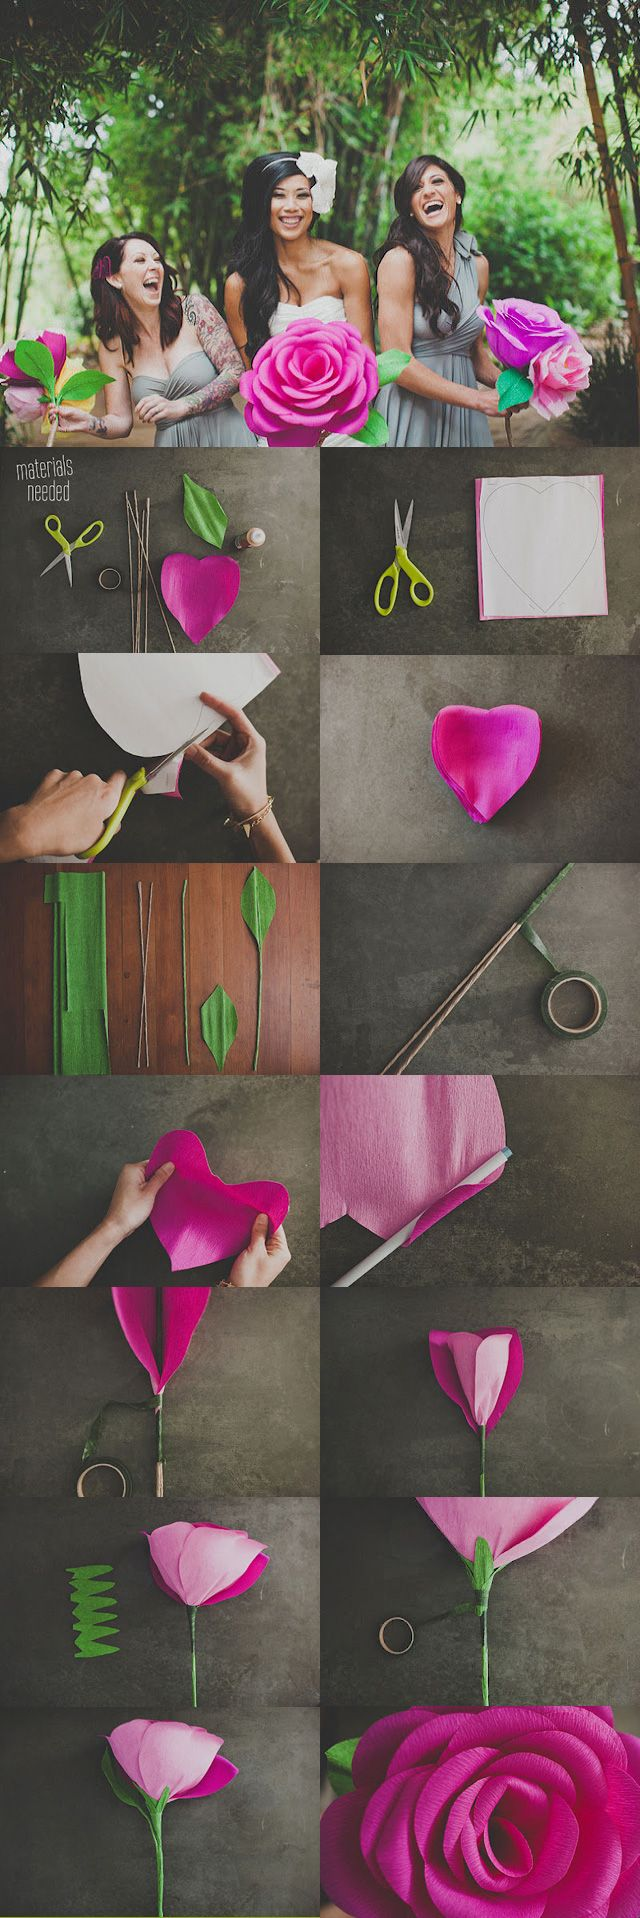 best ideas about giant paper flowers paper diy giant paper rose flower this is a different idea i wonder if it